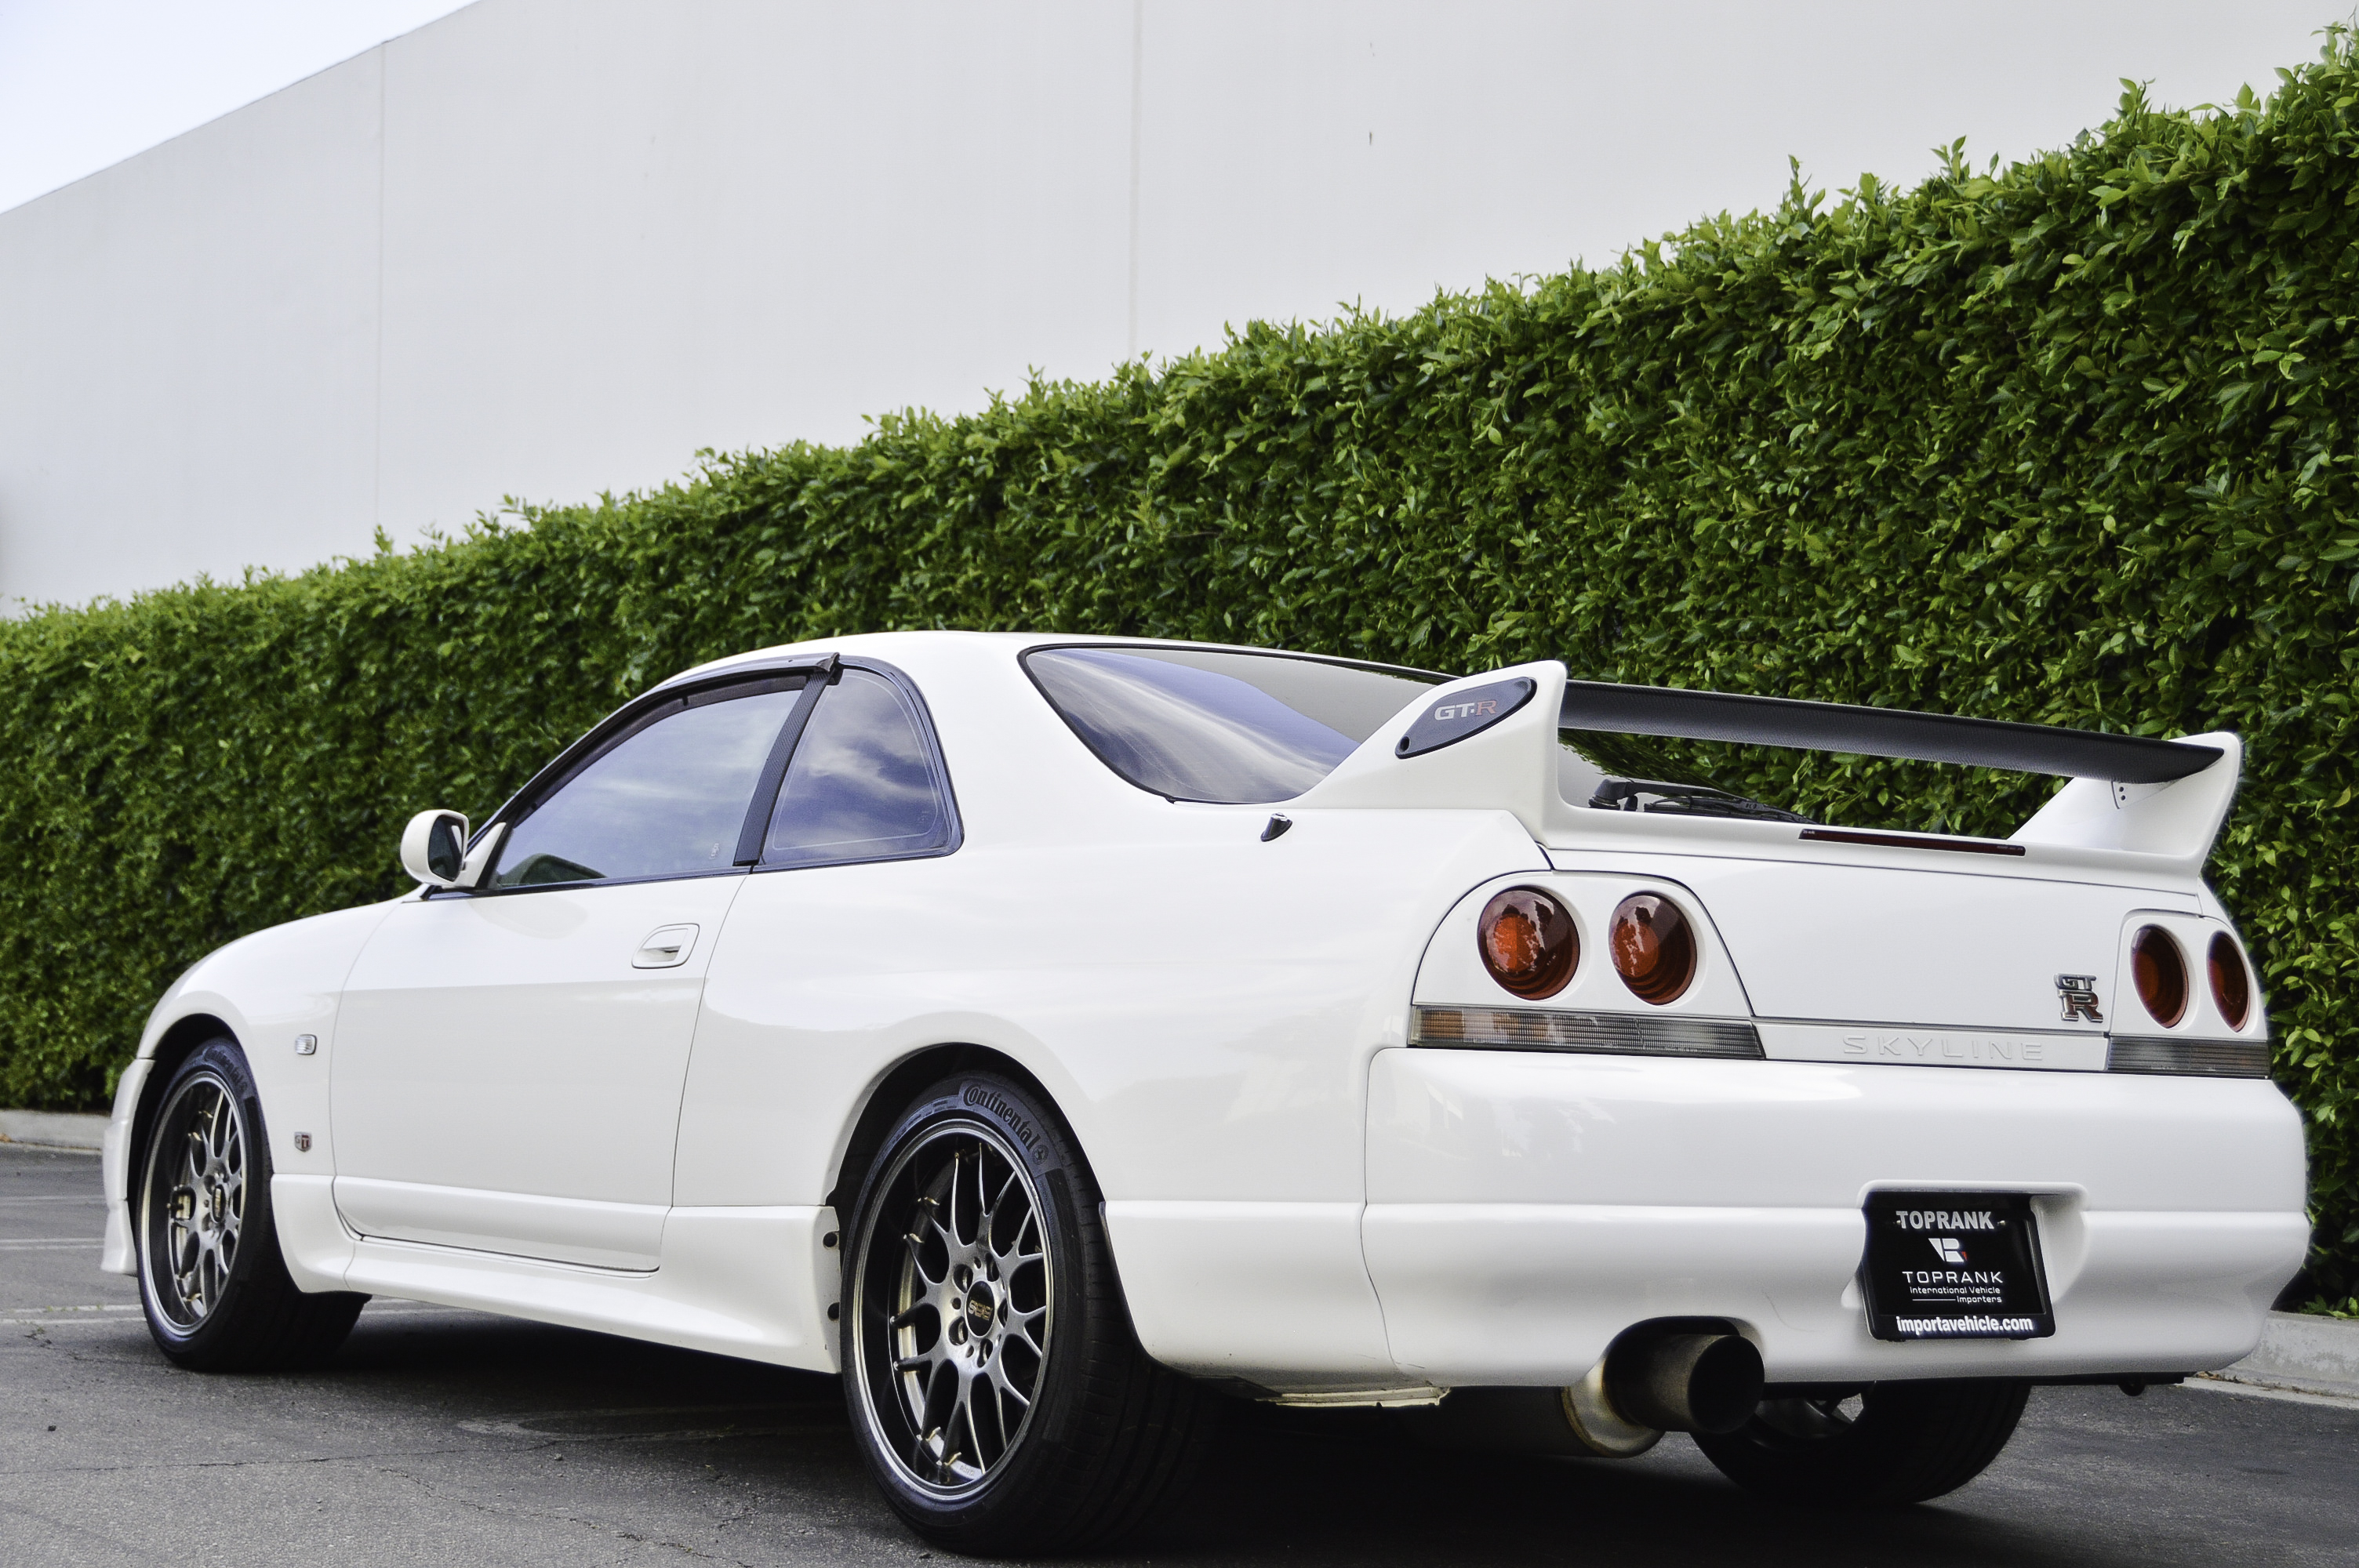 US Legal R33 Nissan Skyline GT-R For Sale at Toprank JDM Importers